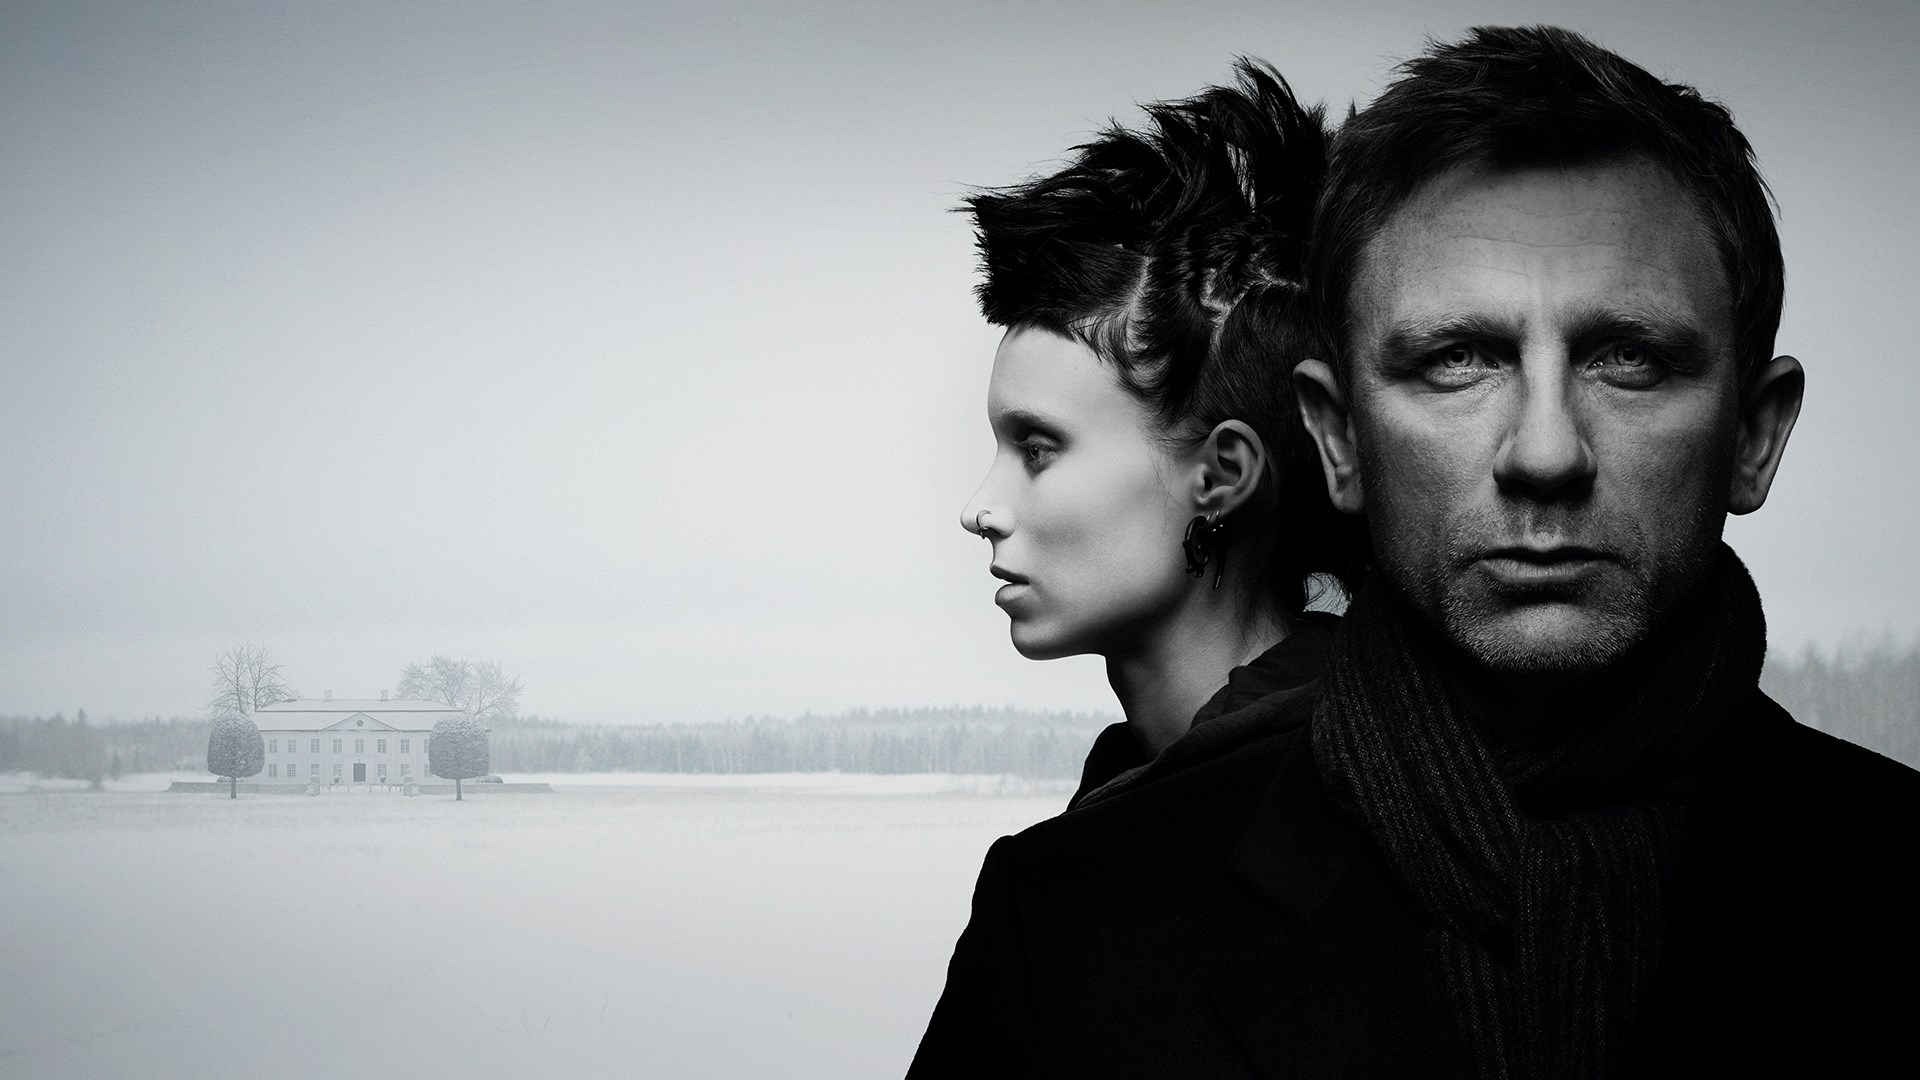 1920x1080-widescreen-the-girl-with-the-dragon-tattoo-wallpaper-wpc9001112